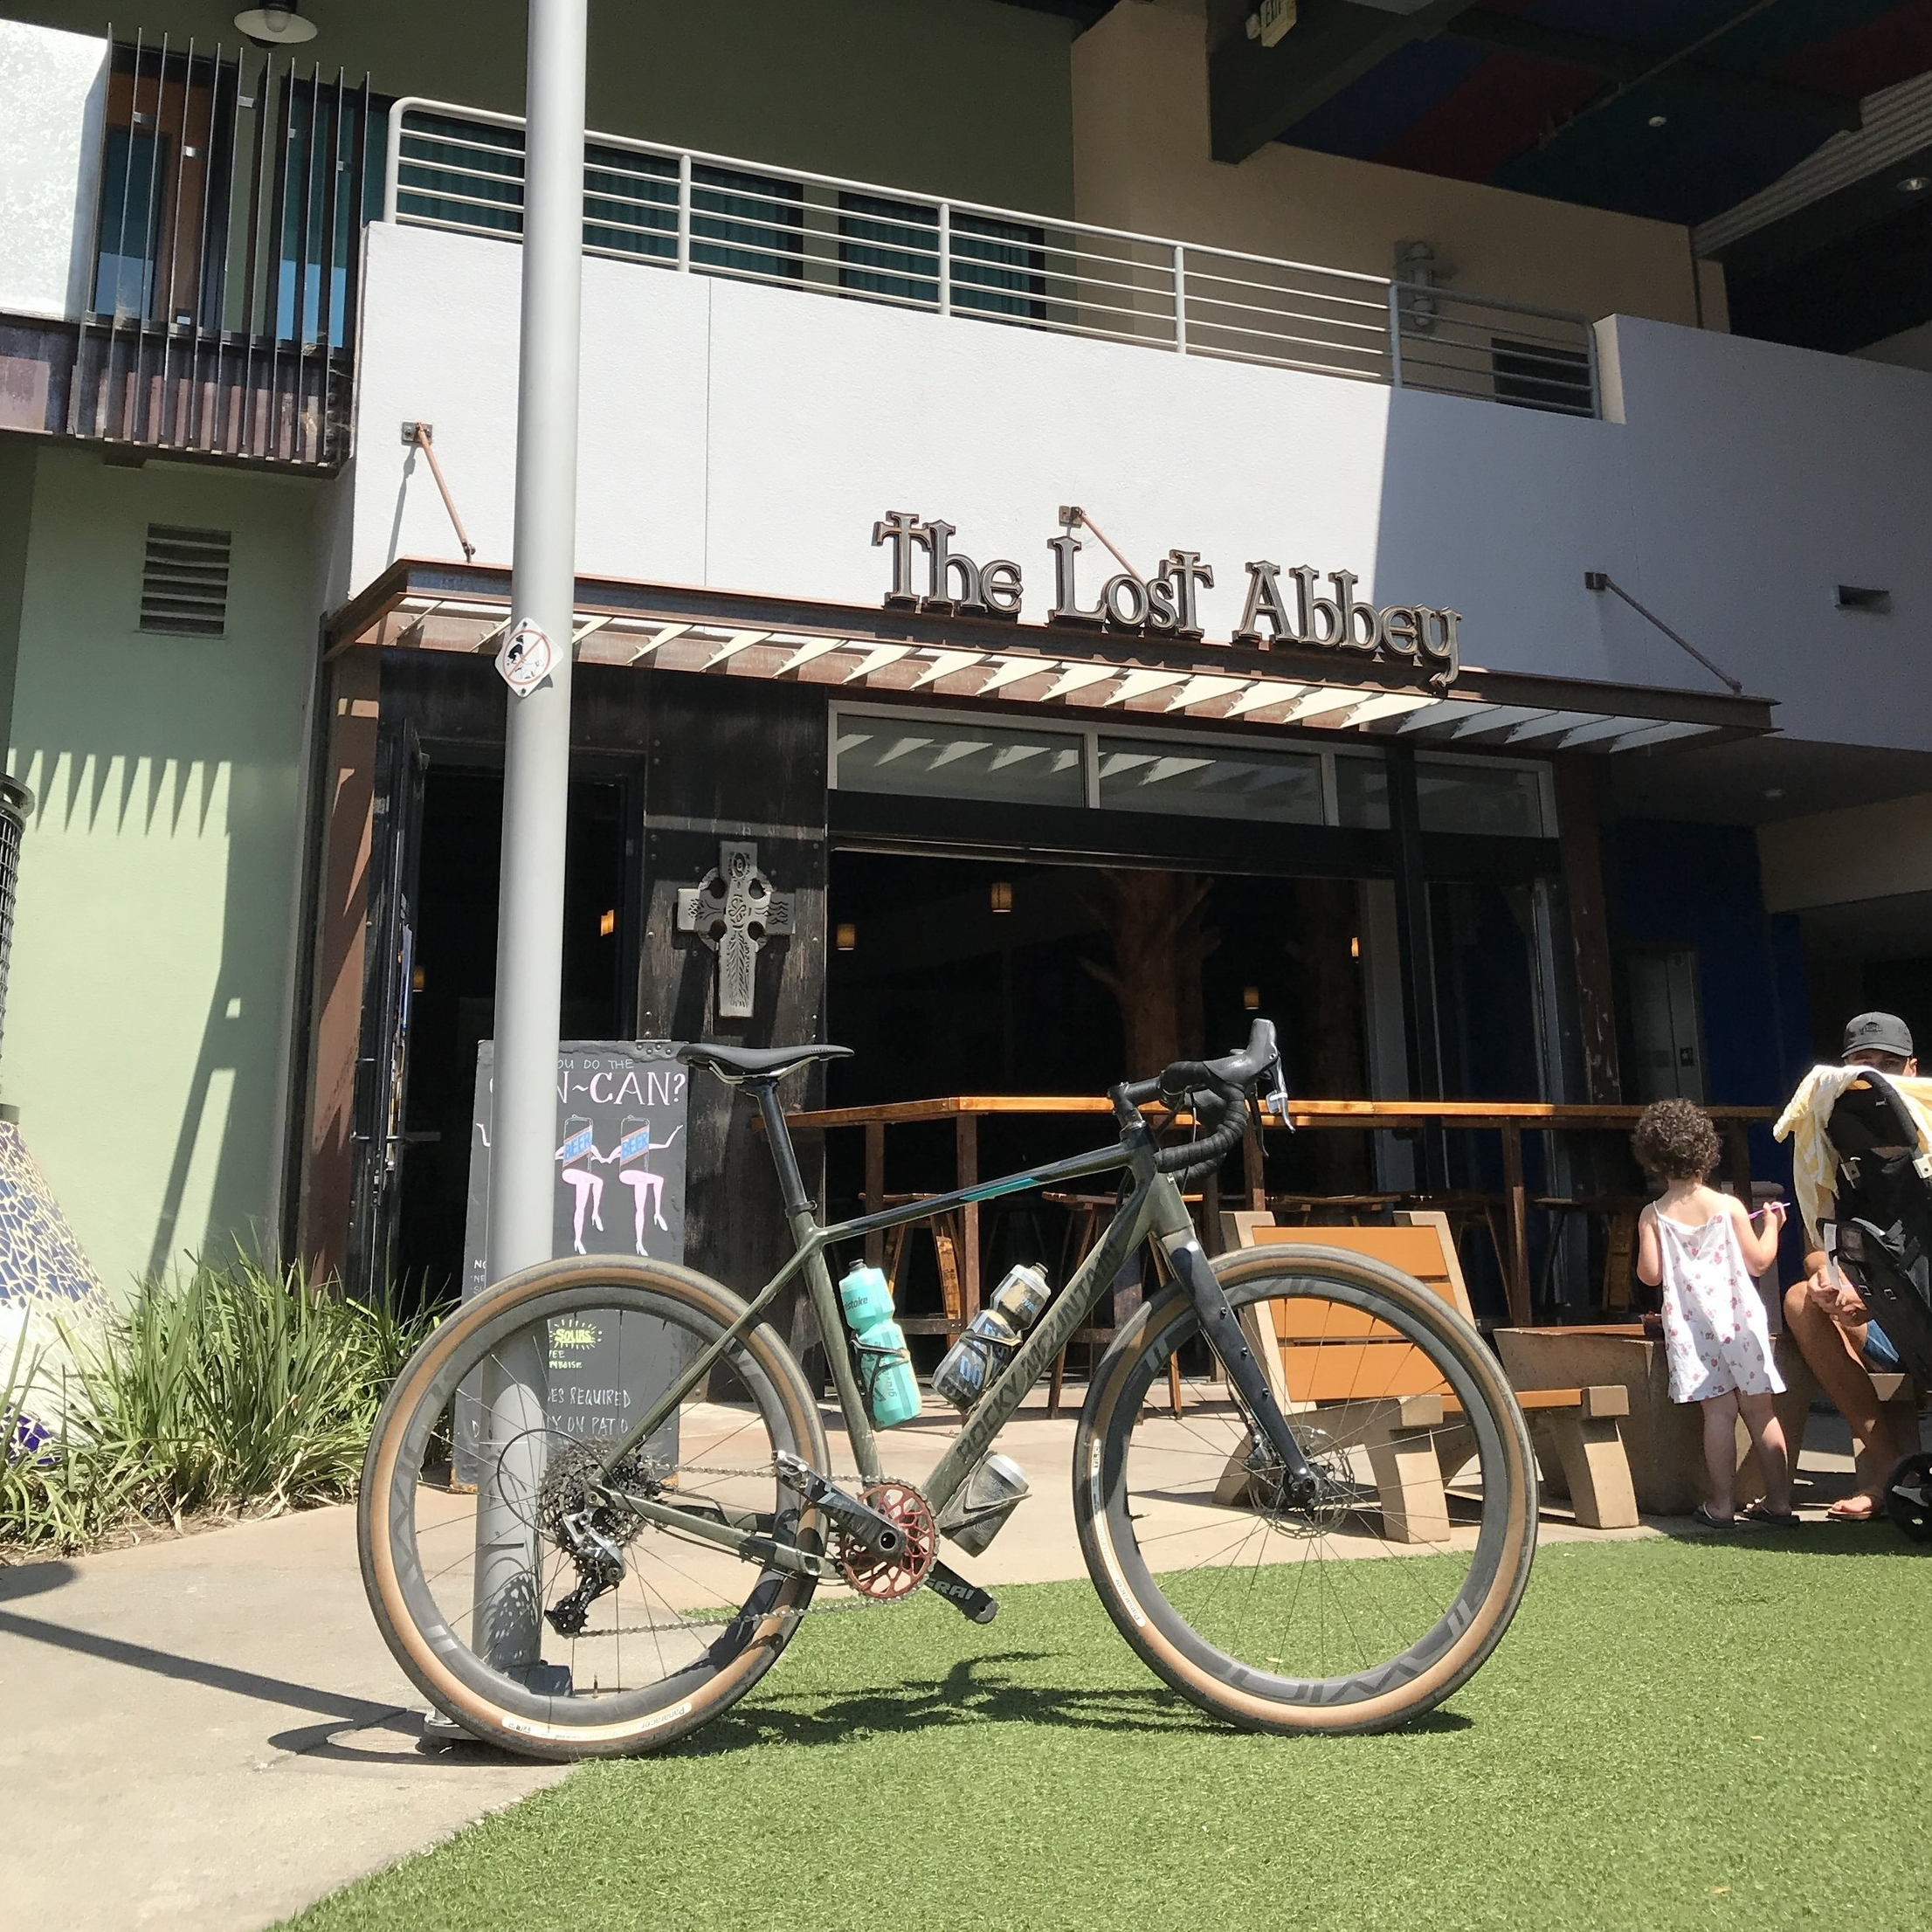 2018 Rocky Mountain Gravel Bike at Lost Abbey Brewing Co